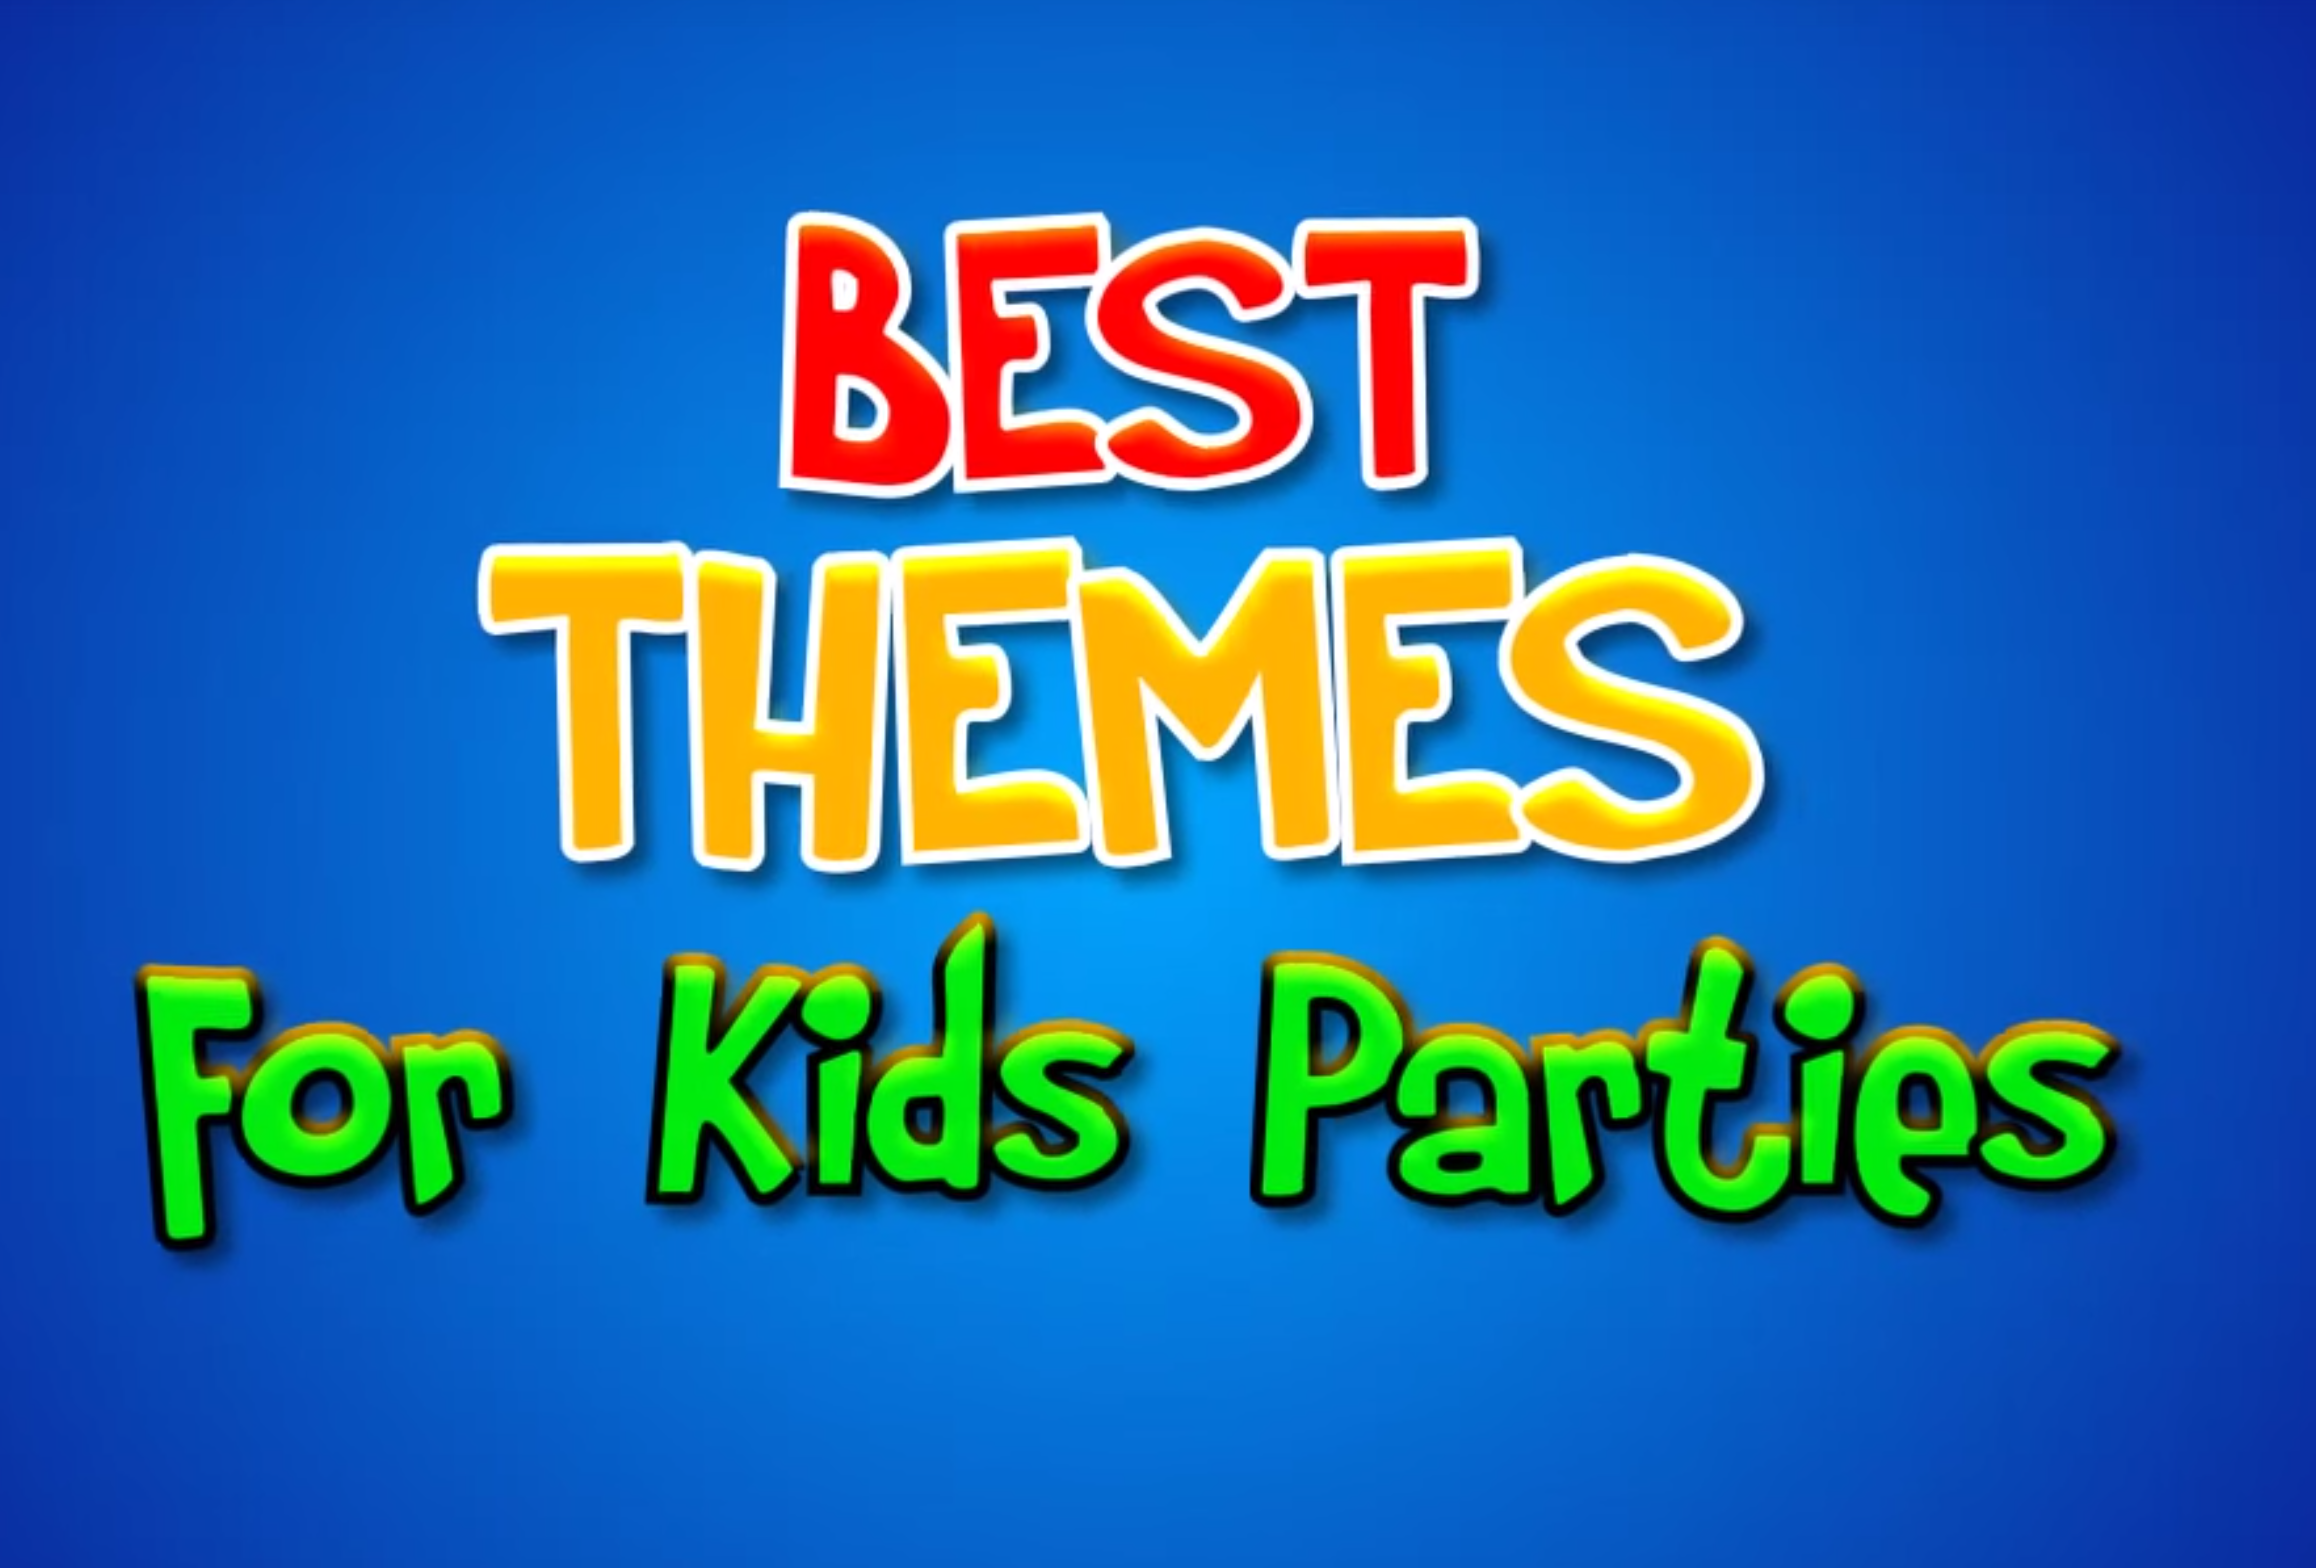 Best Themes